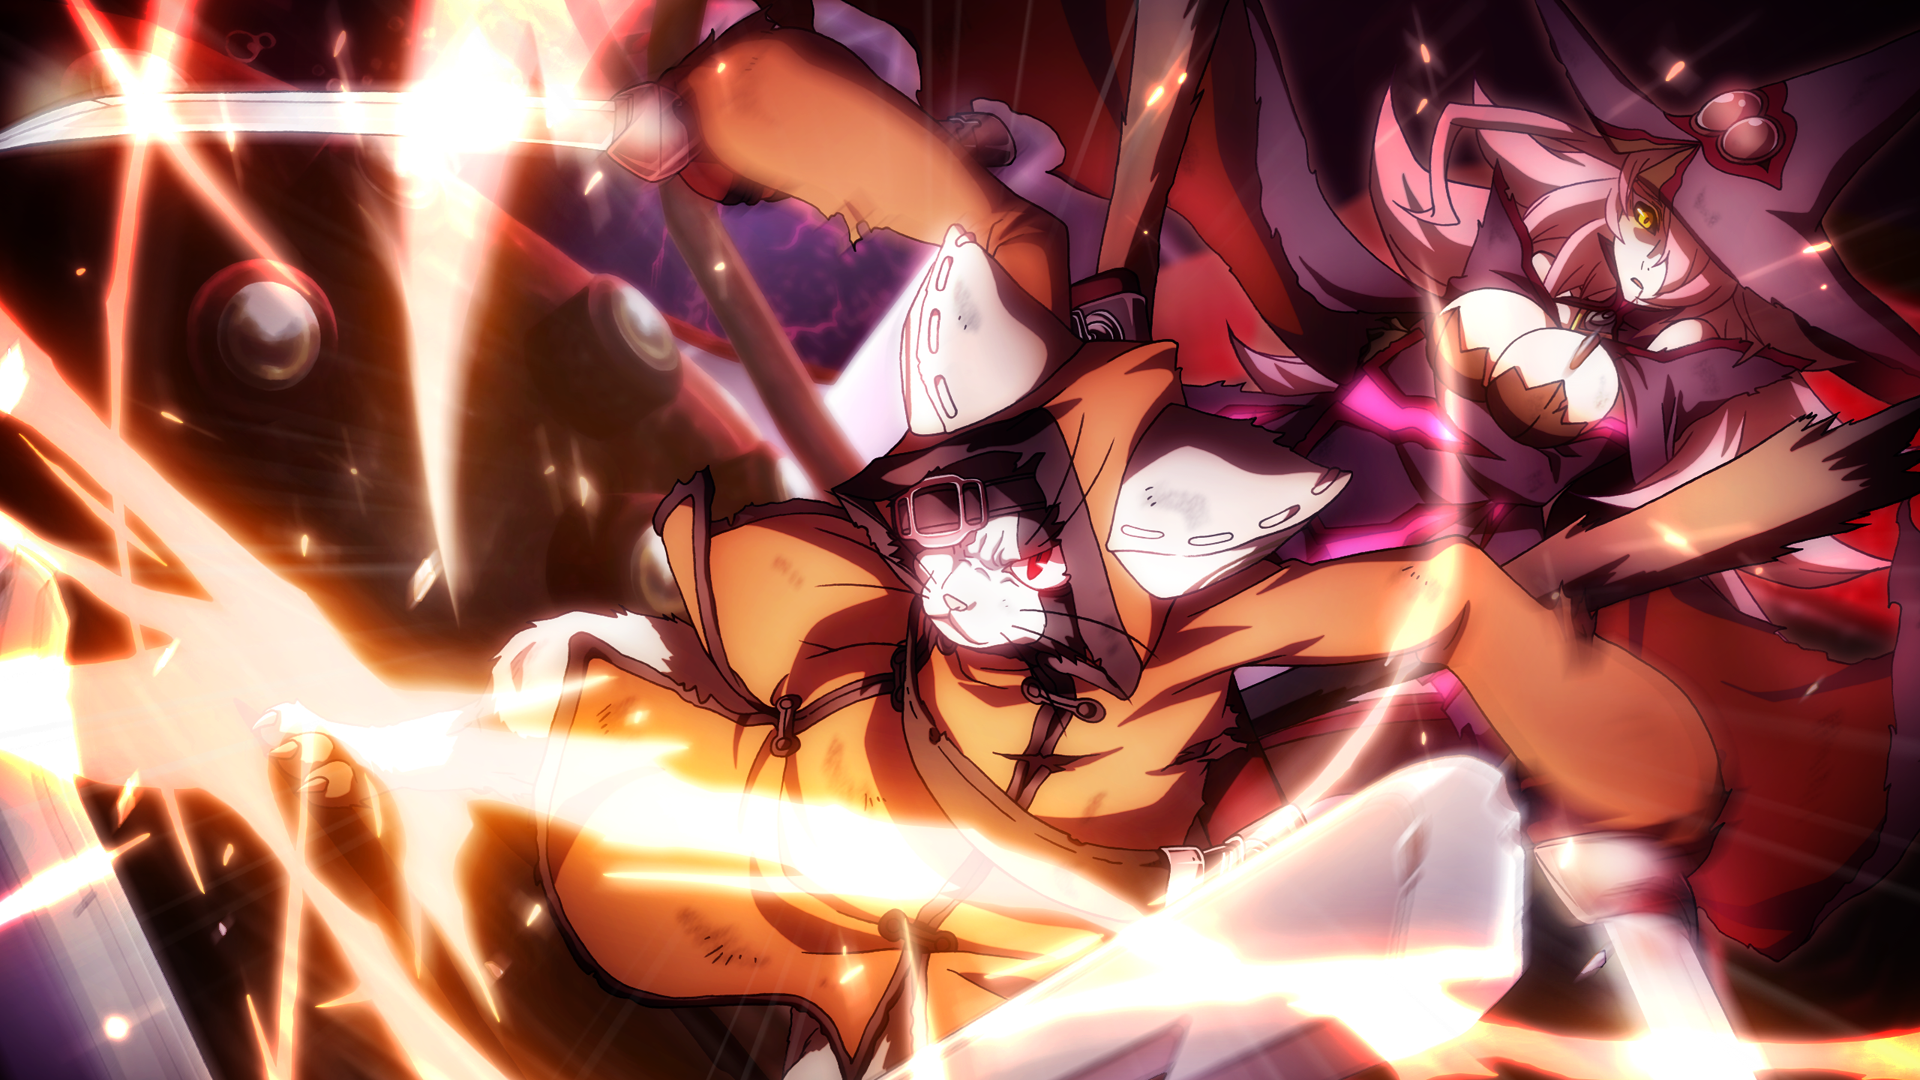 Jubei Blazblue Central Fiction Story Art Jubei Blazblue Central